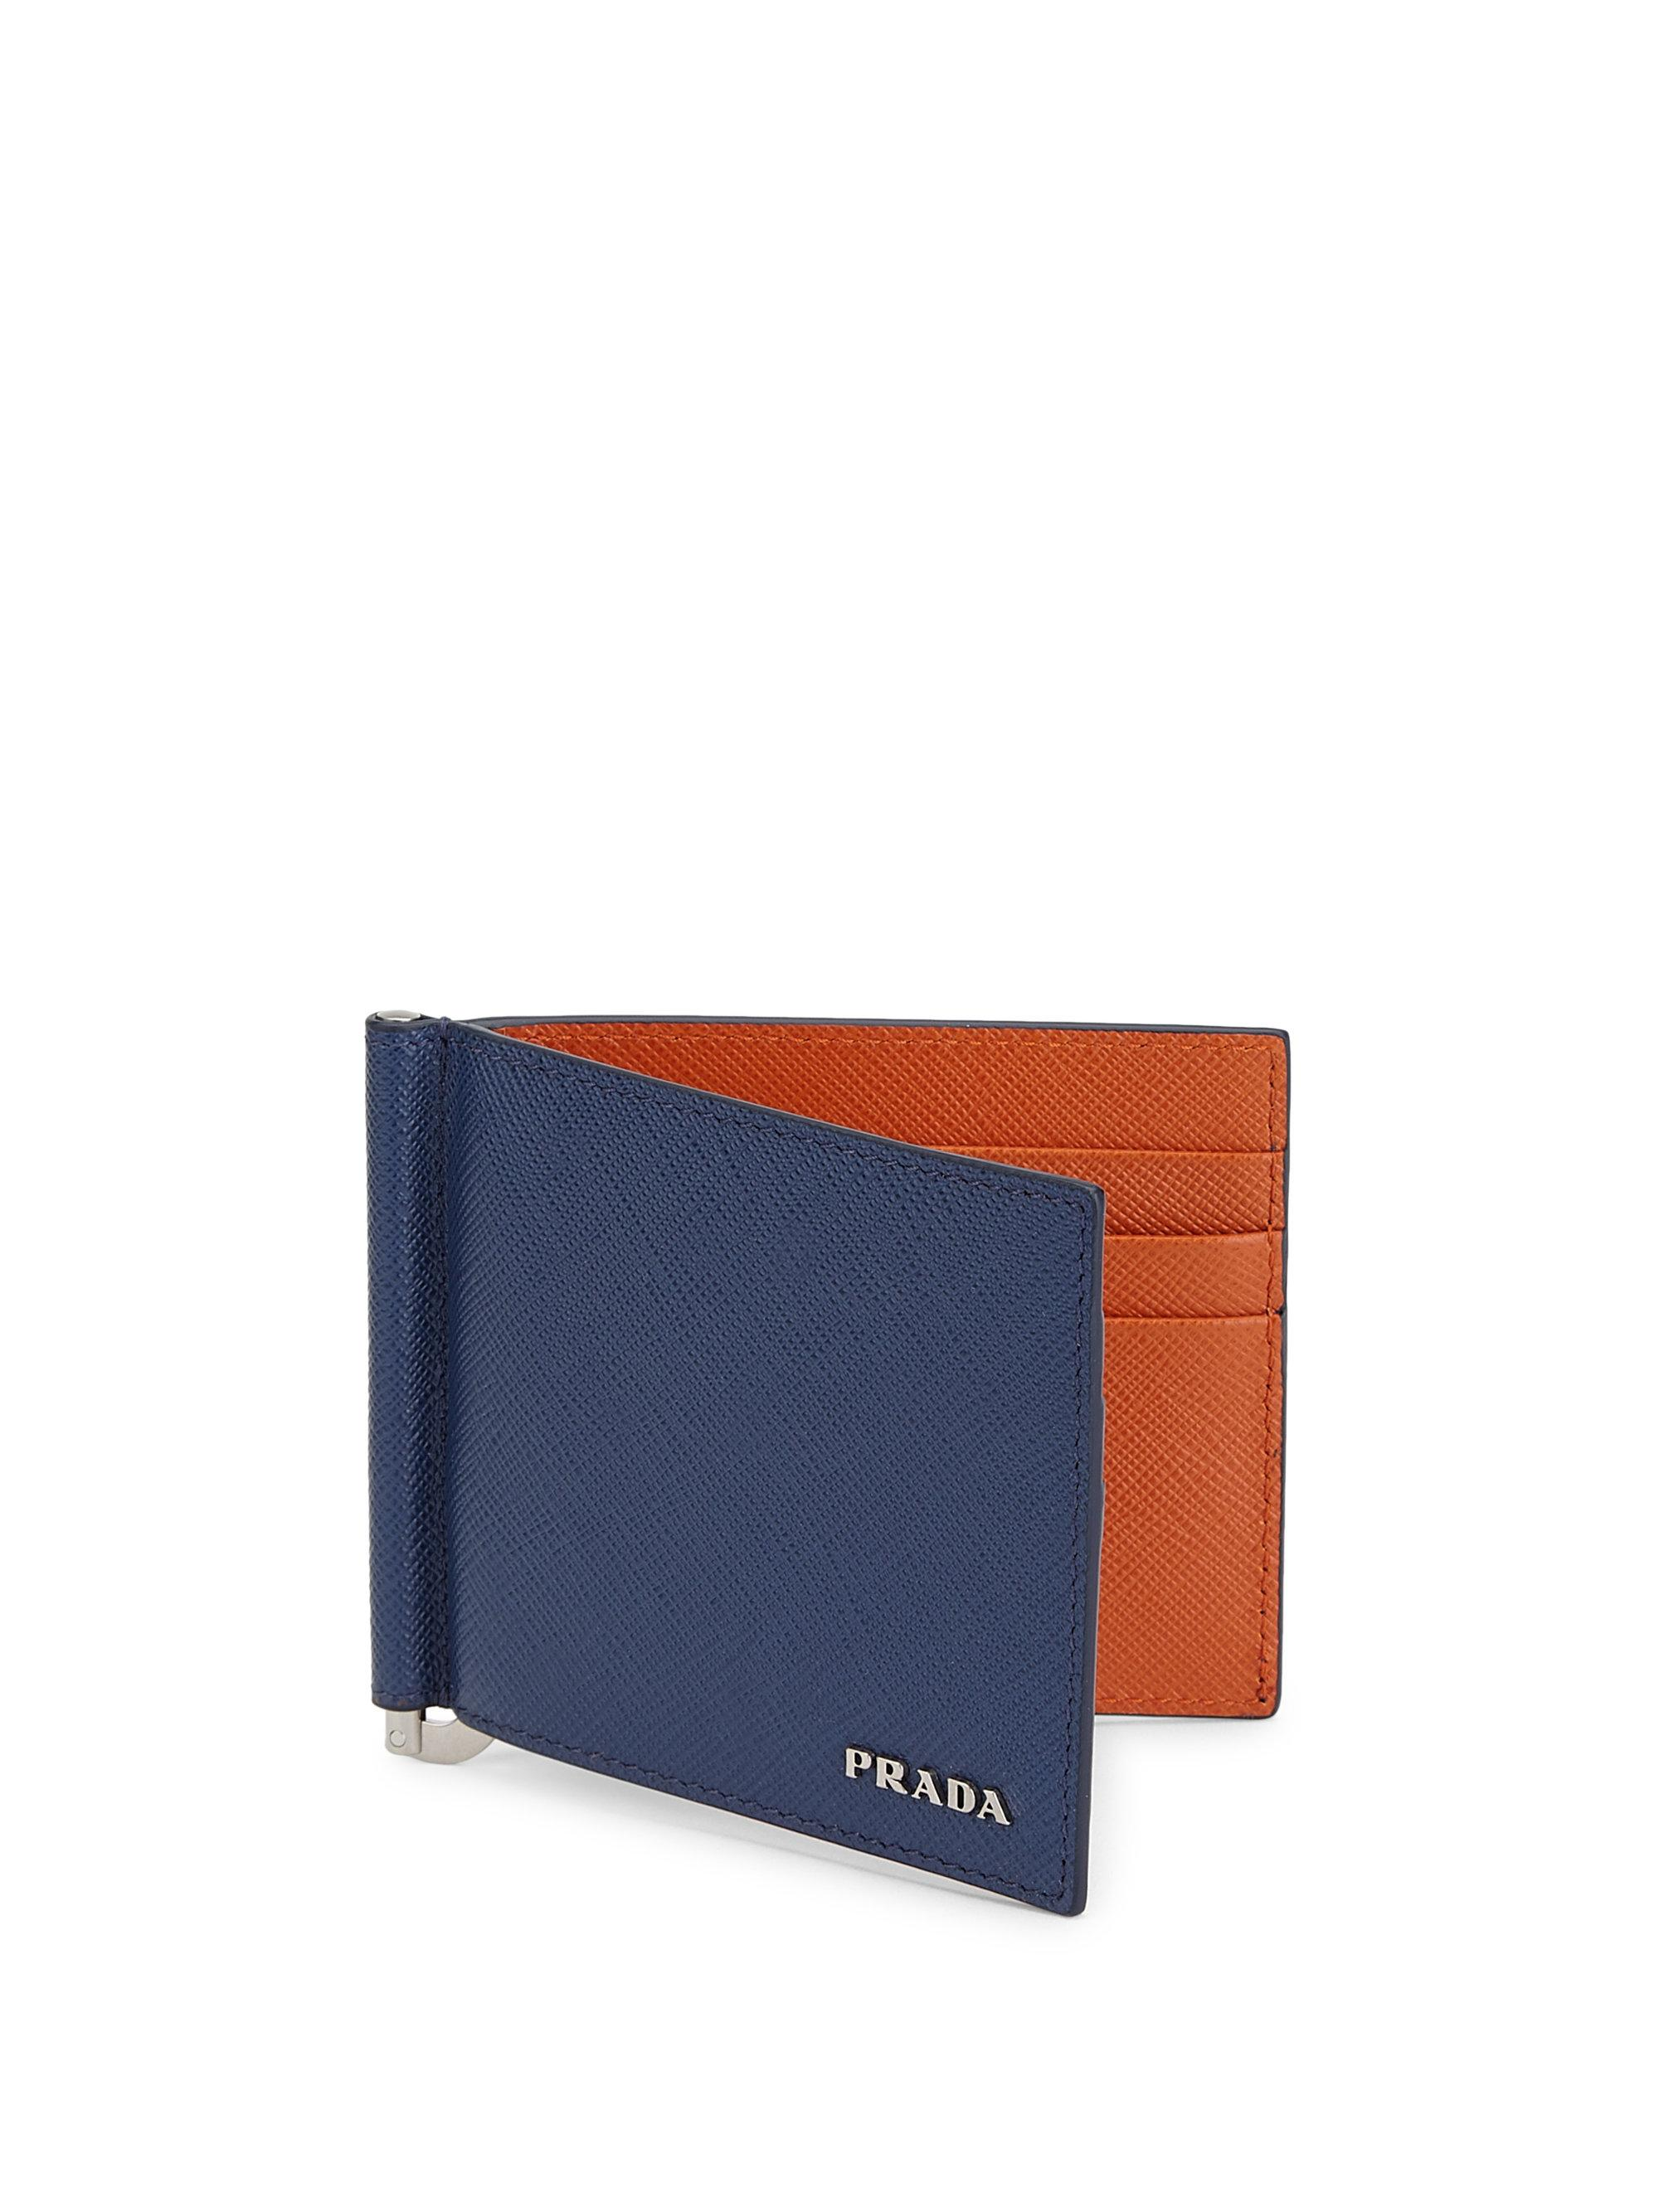 03d5cf298f95 ... clearance lyst prada money clip wallet in blue for men 8a803 80225